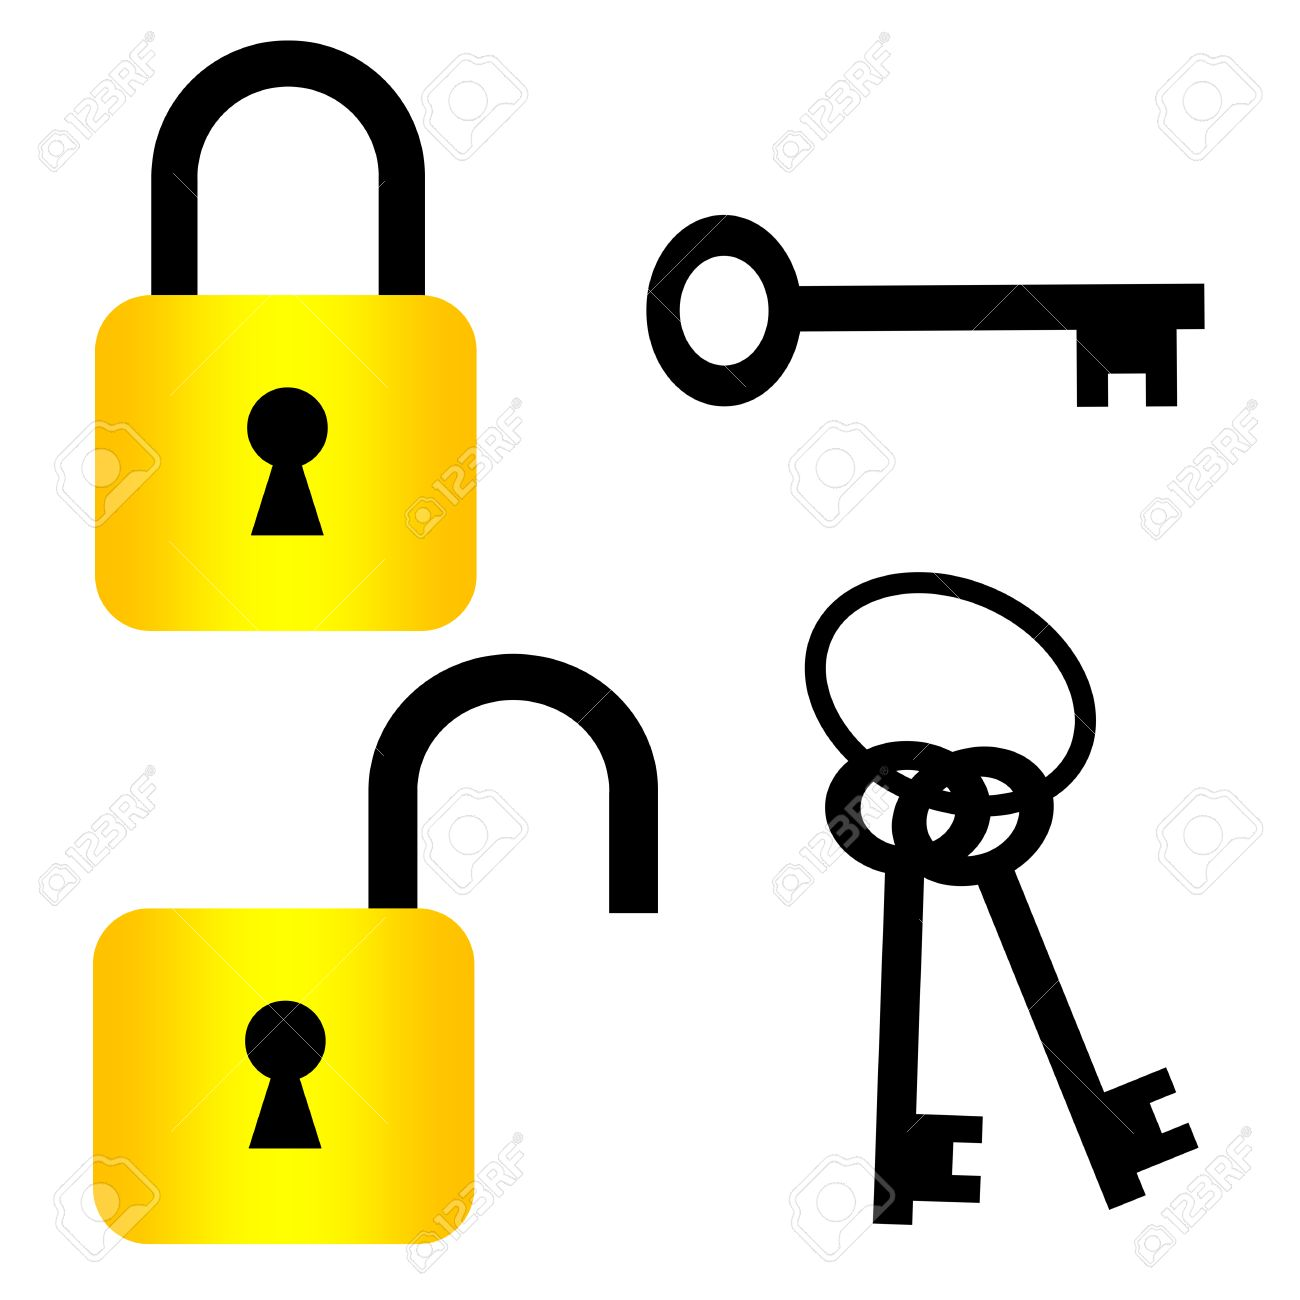 Key In Lock Clipart.